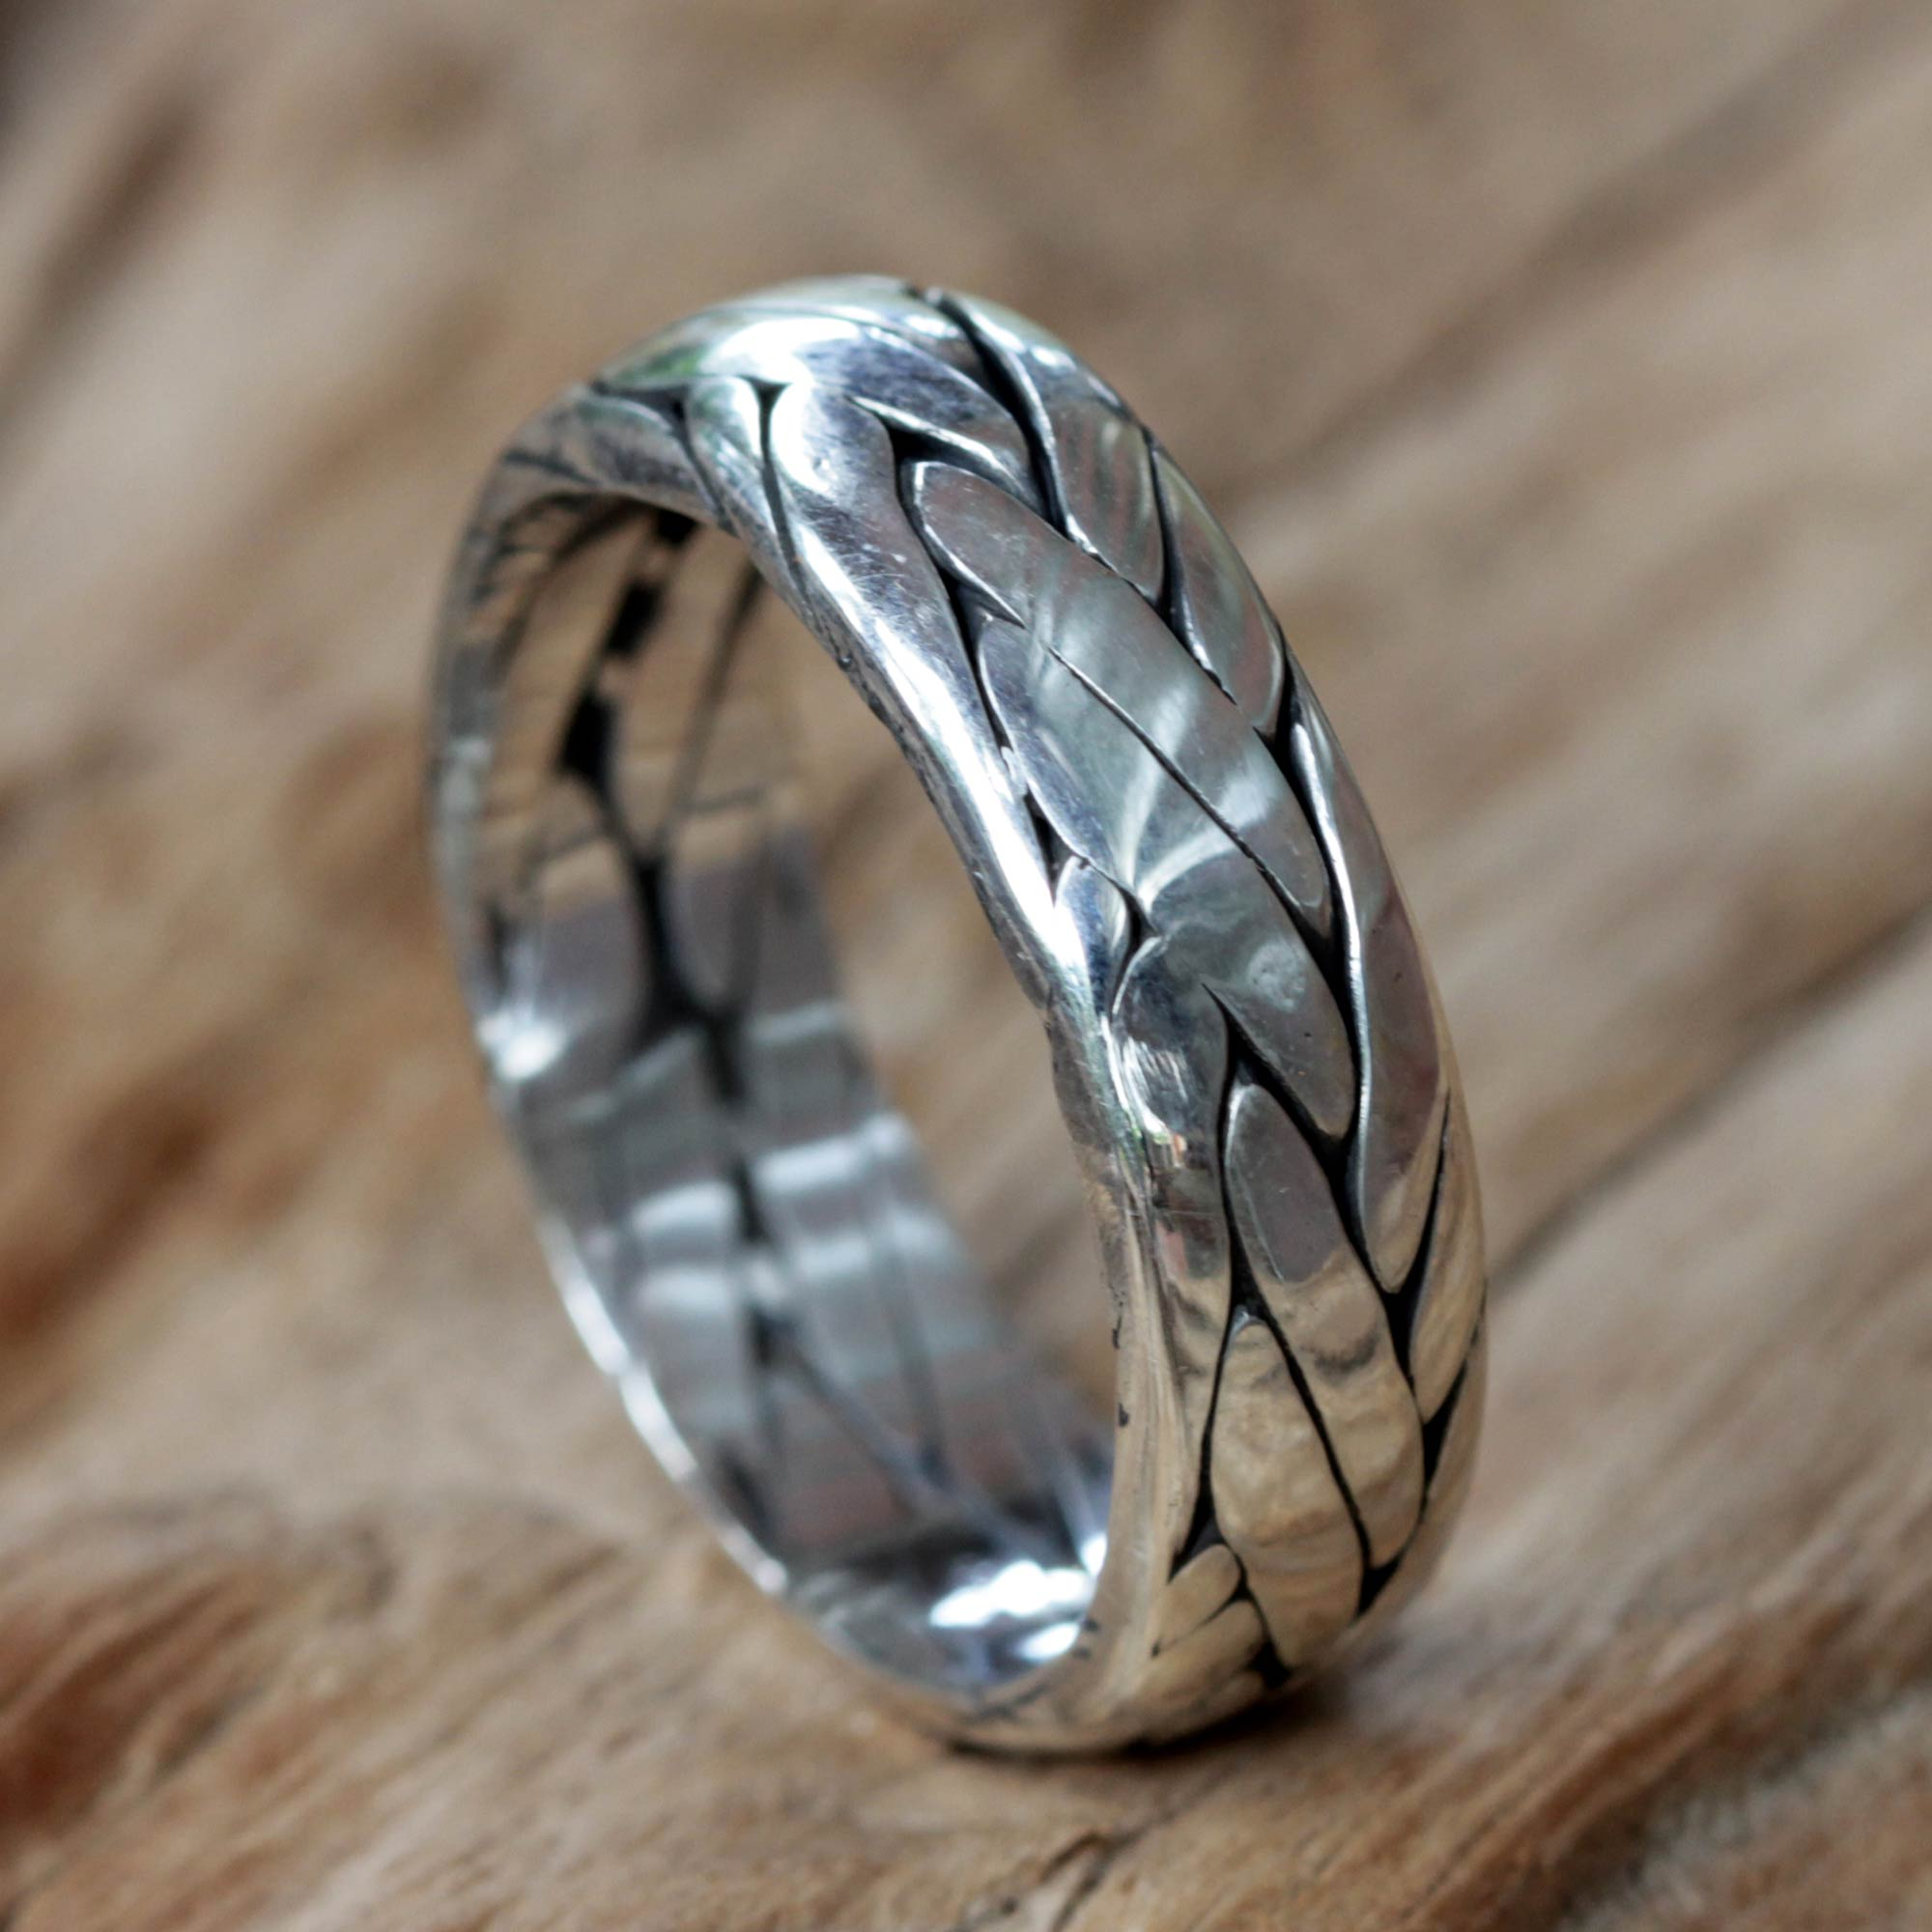 Uni Braided Sterling Silver Ring from Bali Singaraja Weave